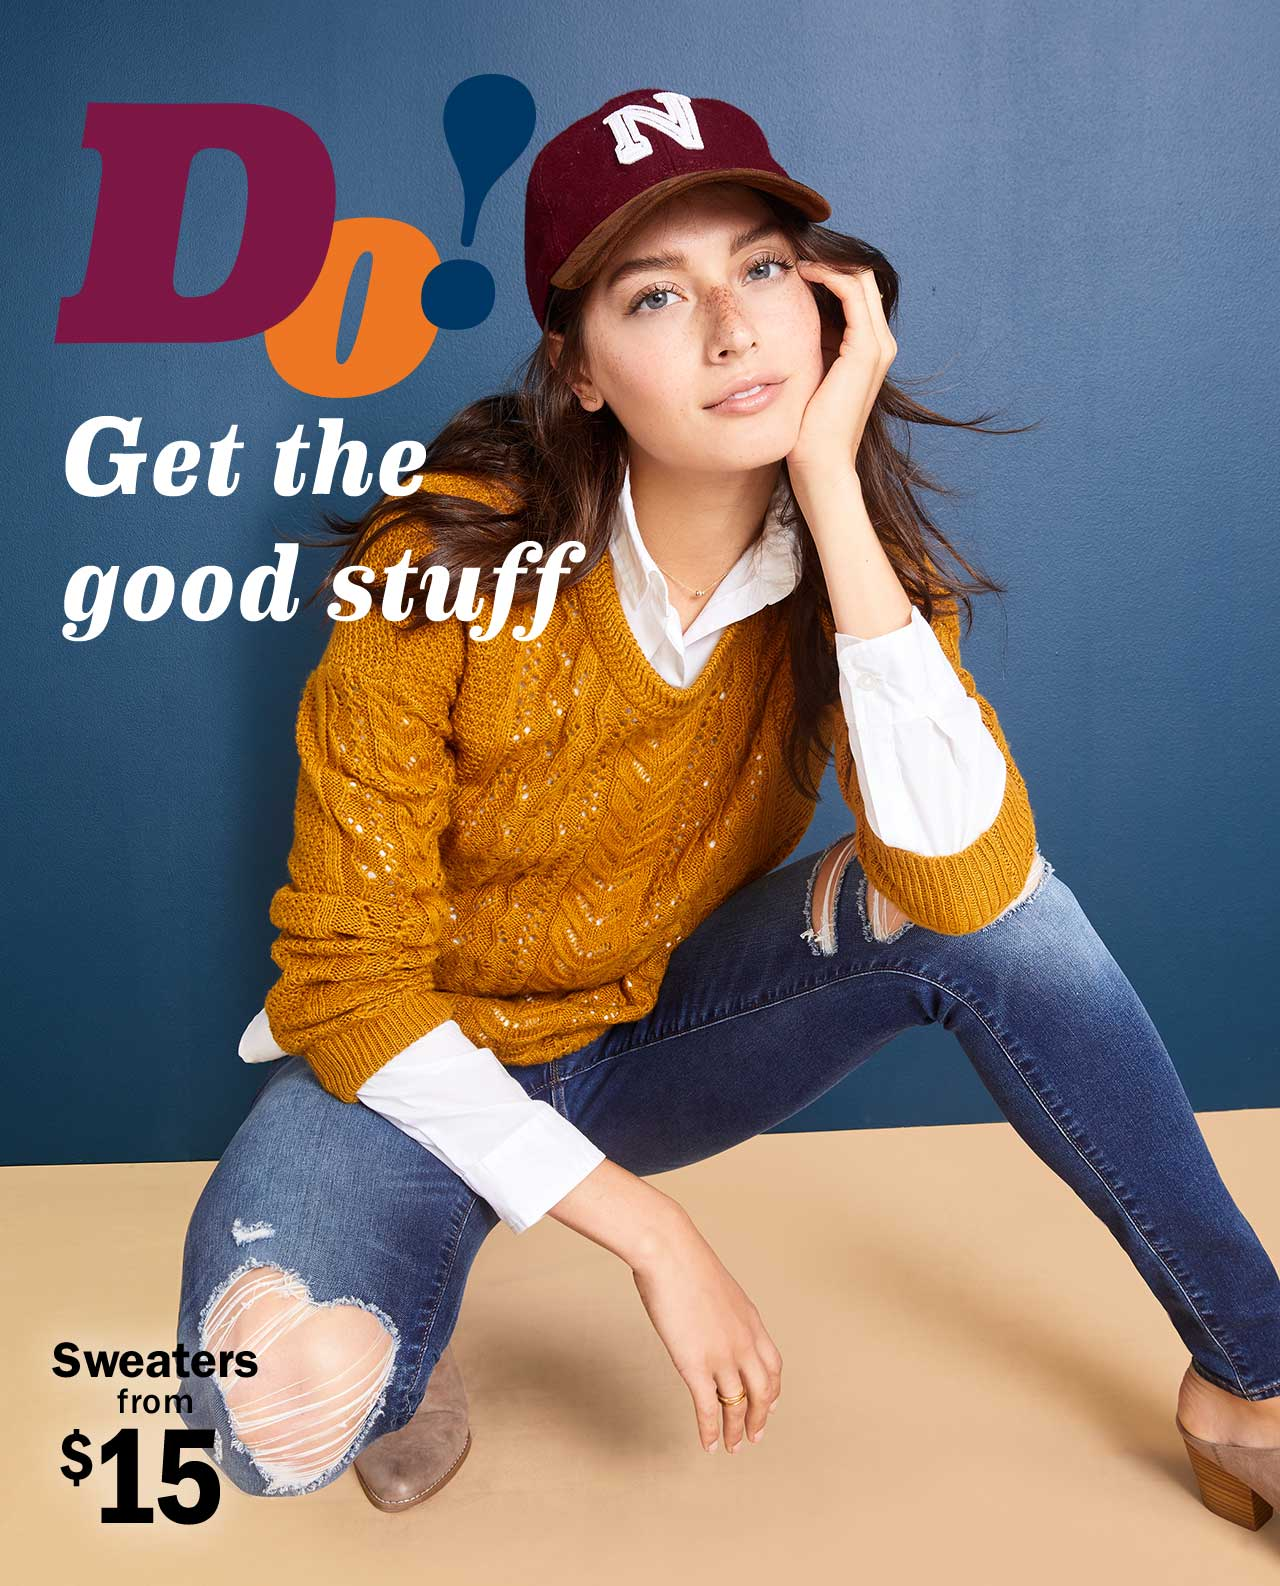 DO! | Get the good stuff | Sweaters from $15